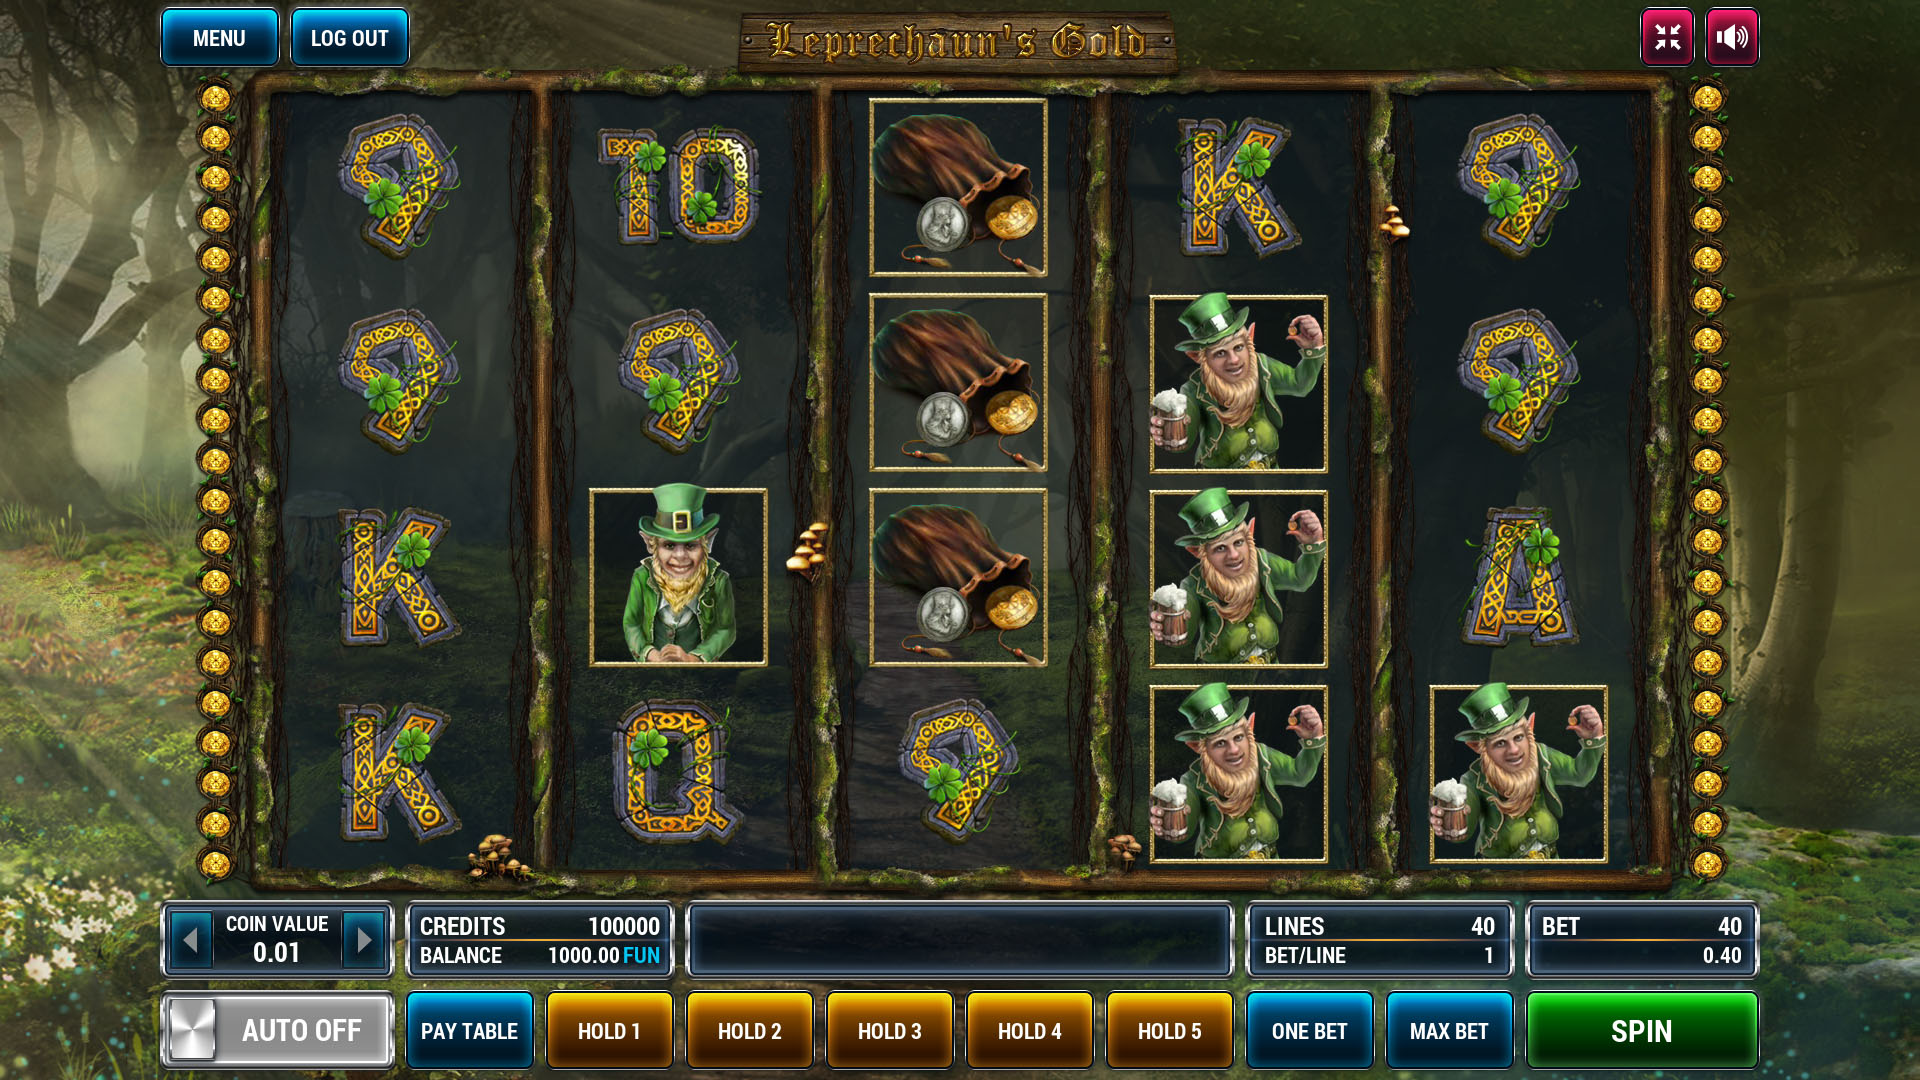 Leprechauns Gold screenshot 2